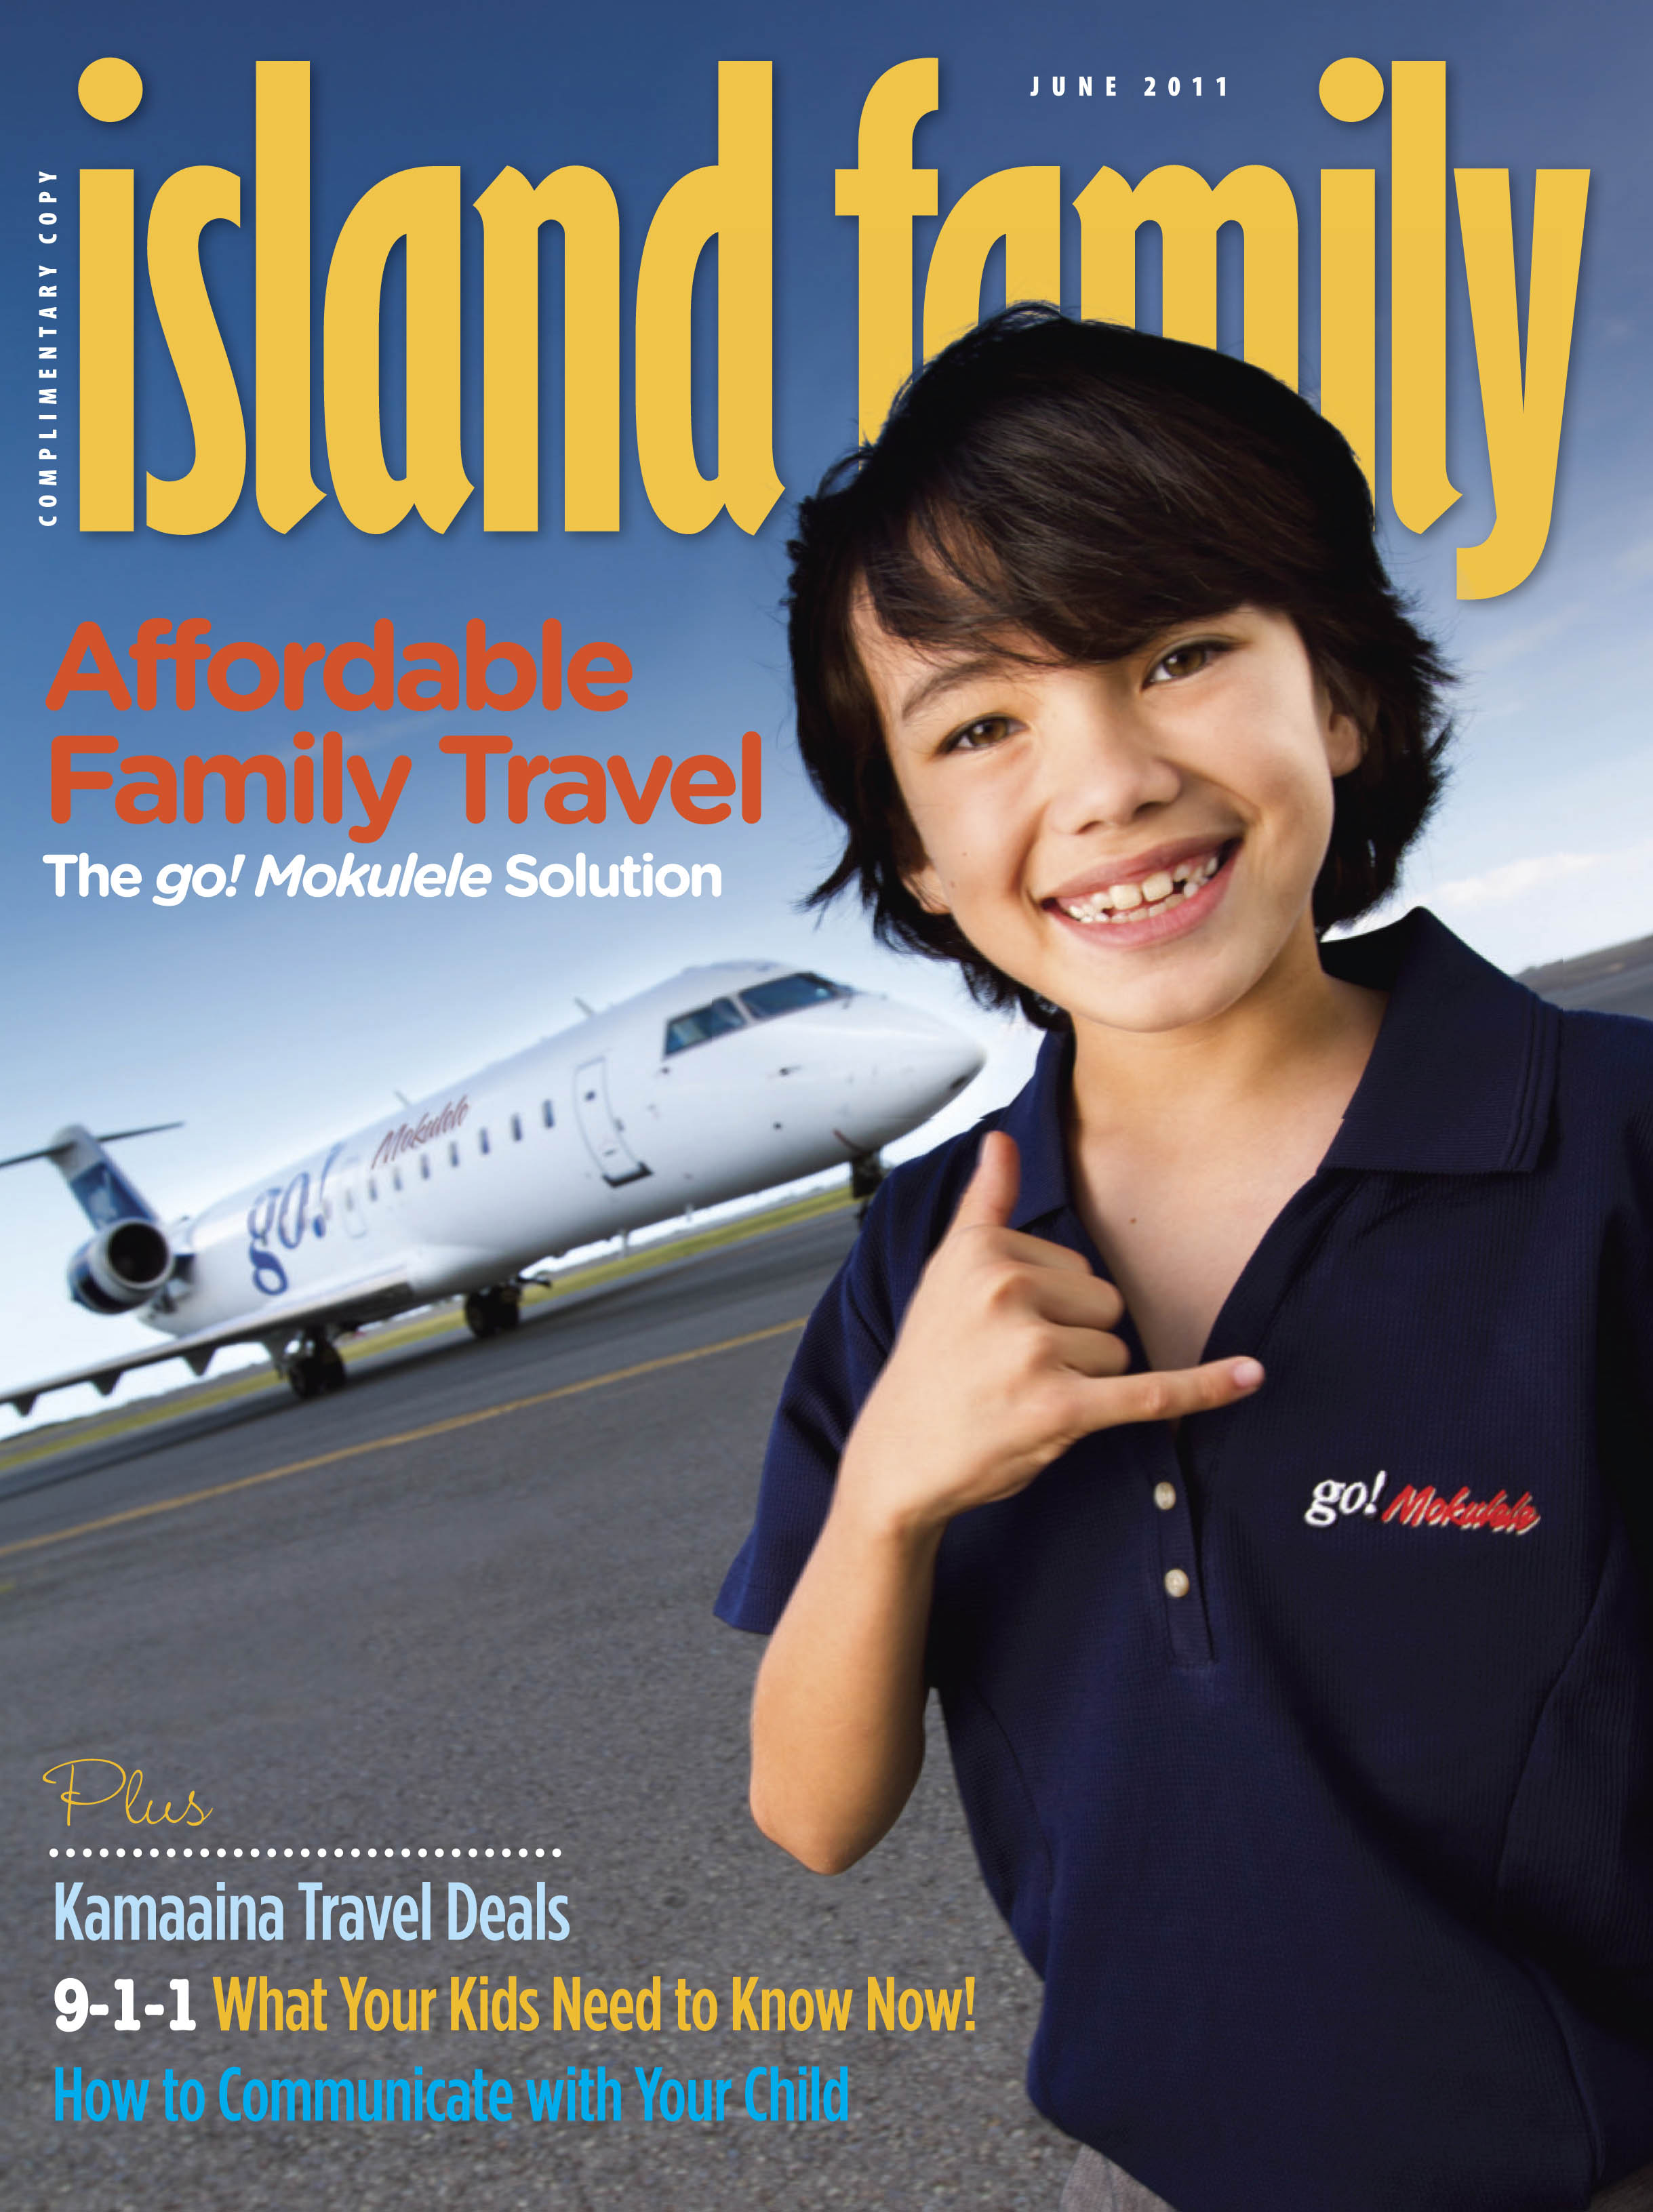 Island Family Magazine June 2011